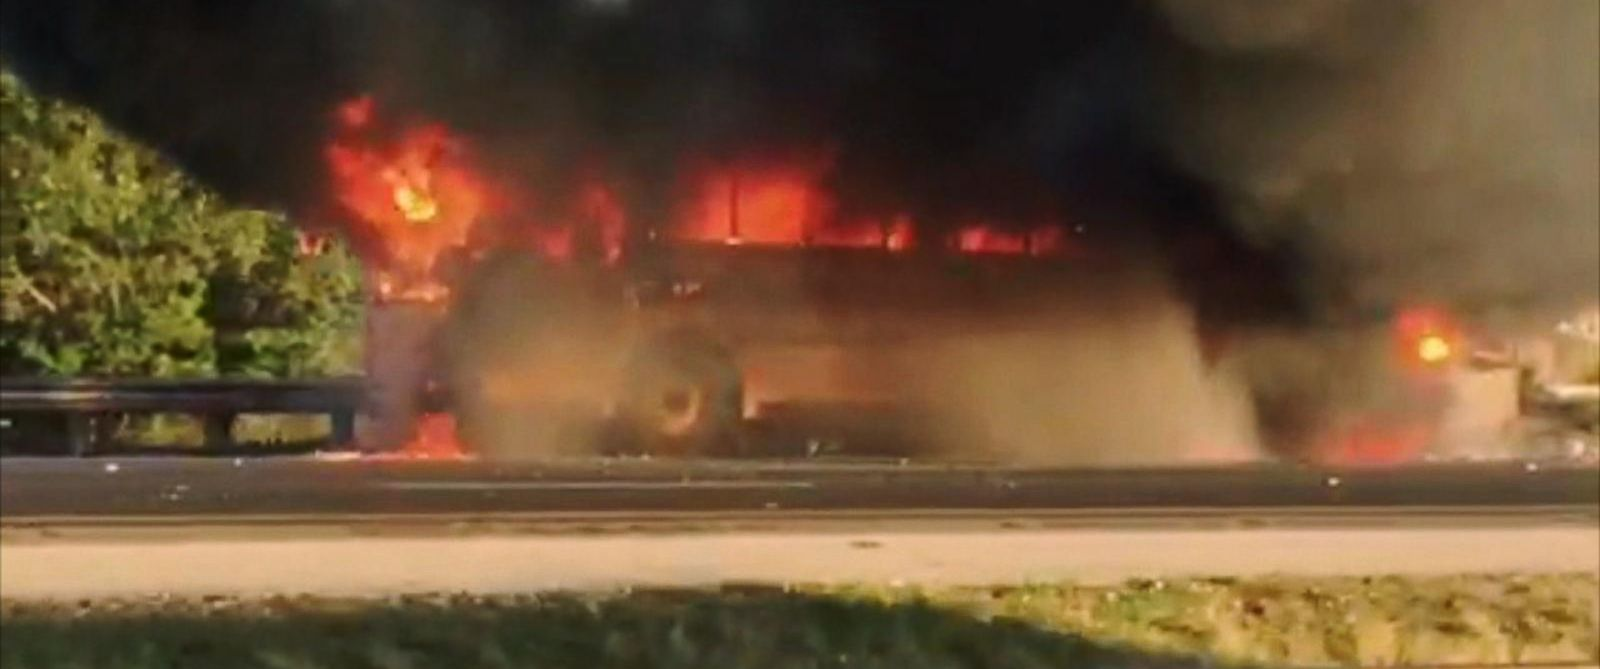 PHOTO: A school bus driver helped students to safety in Florida after the bus was engulfed by flames, Dec. 3, 2014.